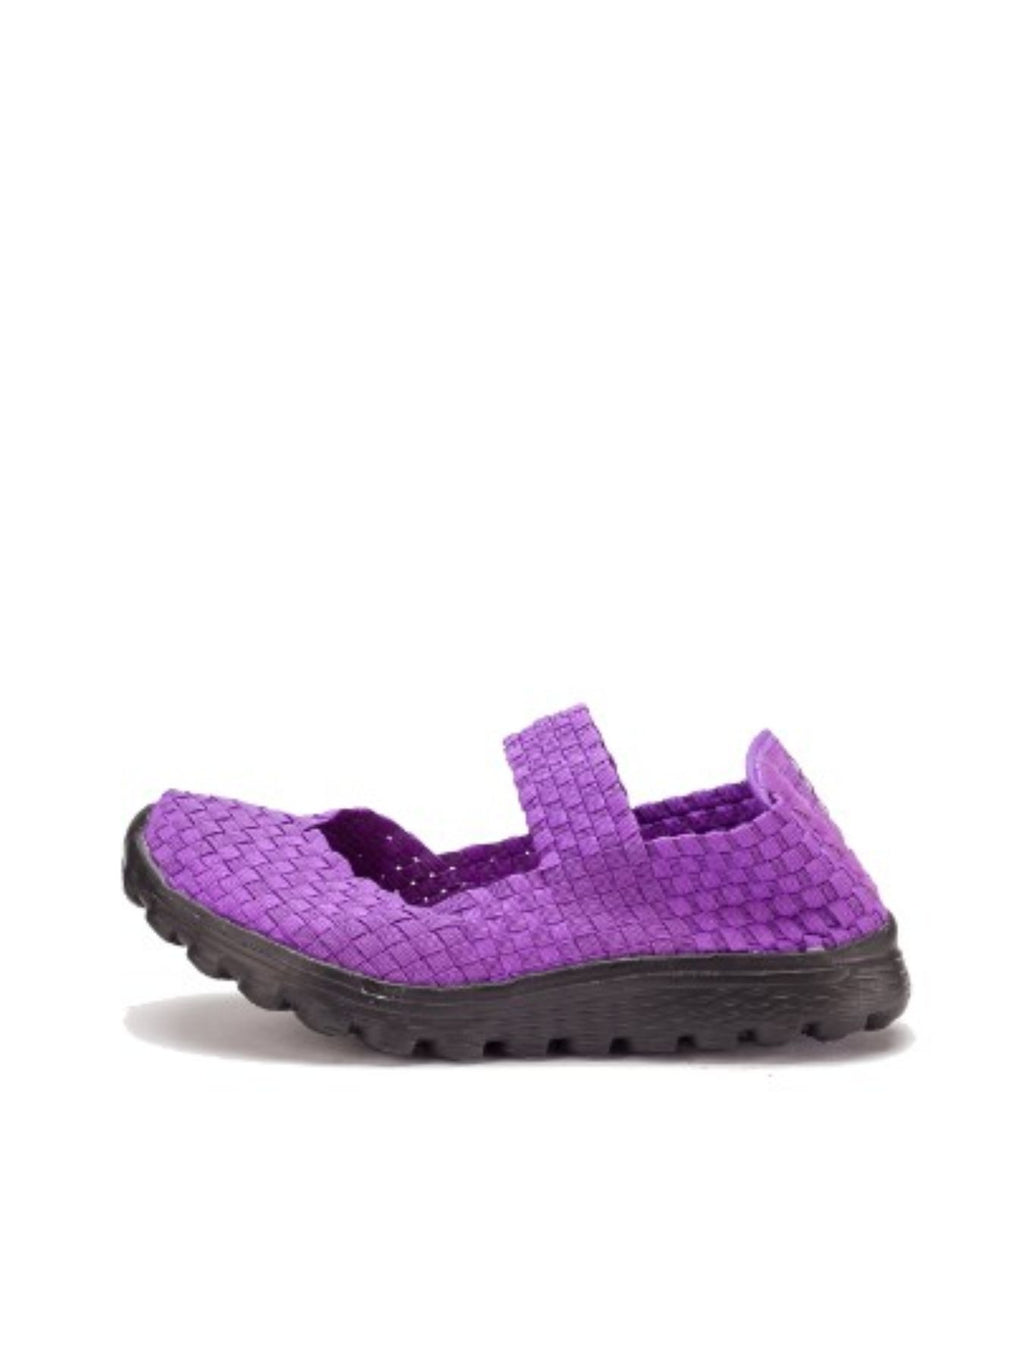 Larrie Purple Sporty Woven Sneakers